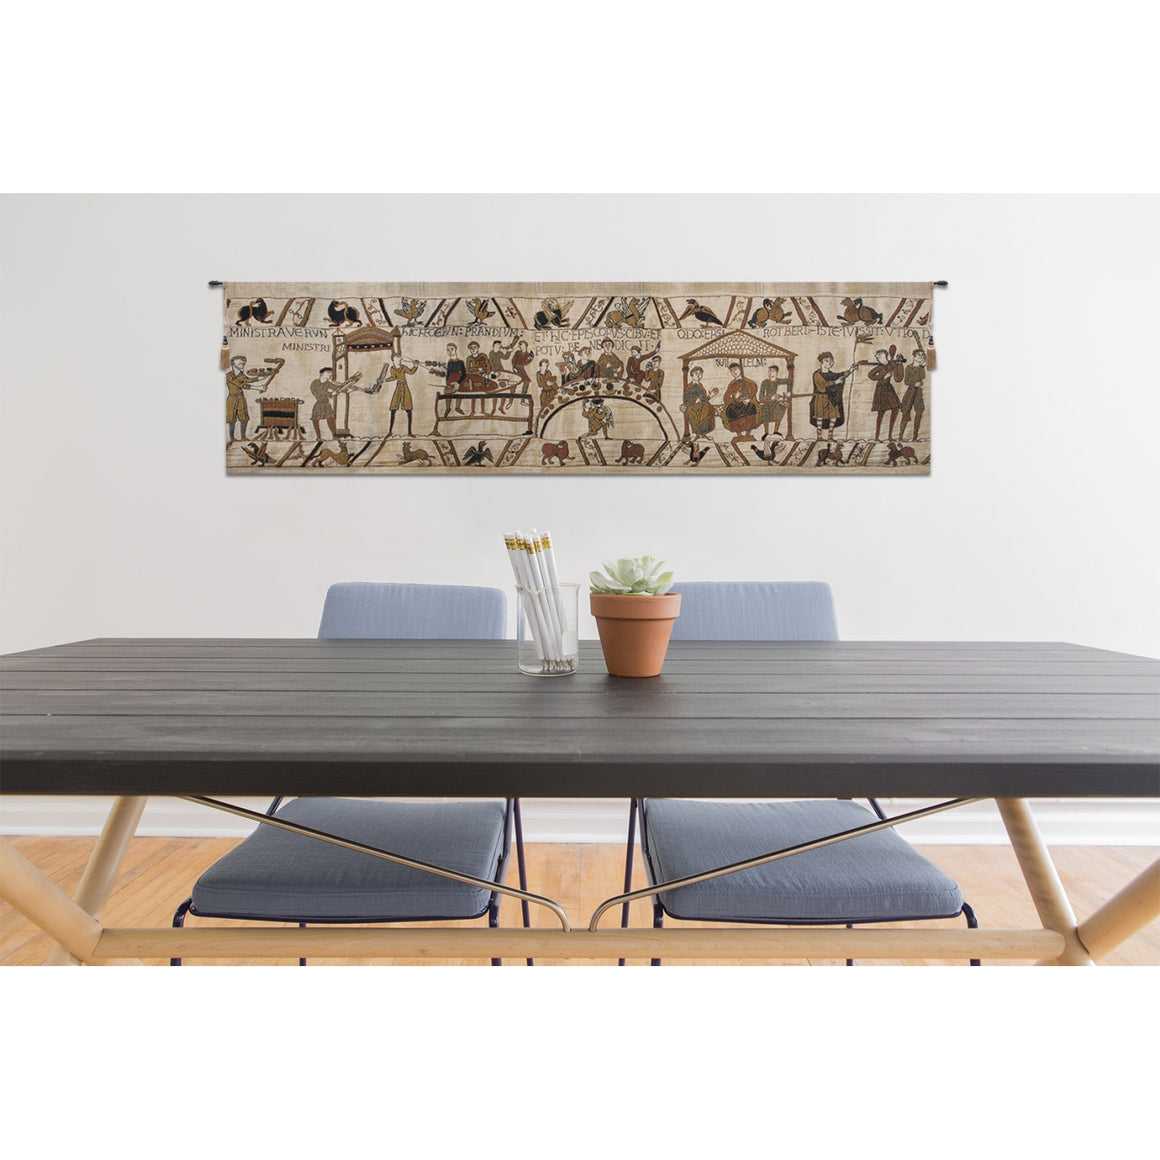 Bayeux Banquet European Hanging Wall Tapestry